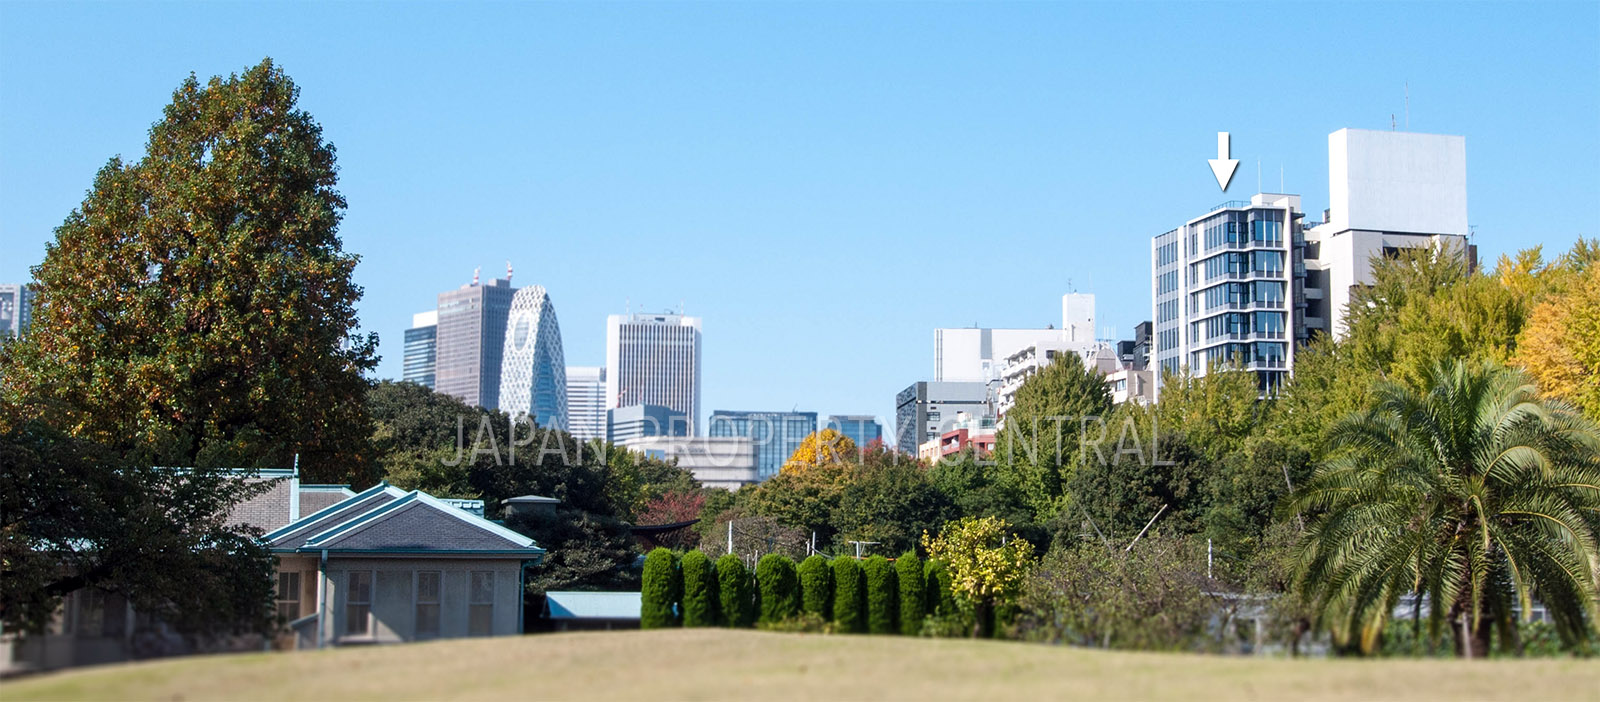 The Parkhouse Shinjuku Gyoen has reached completion